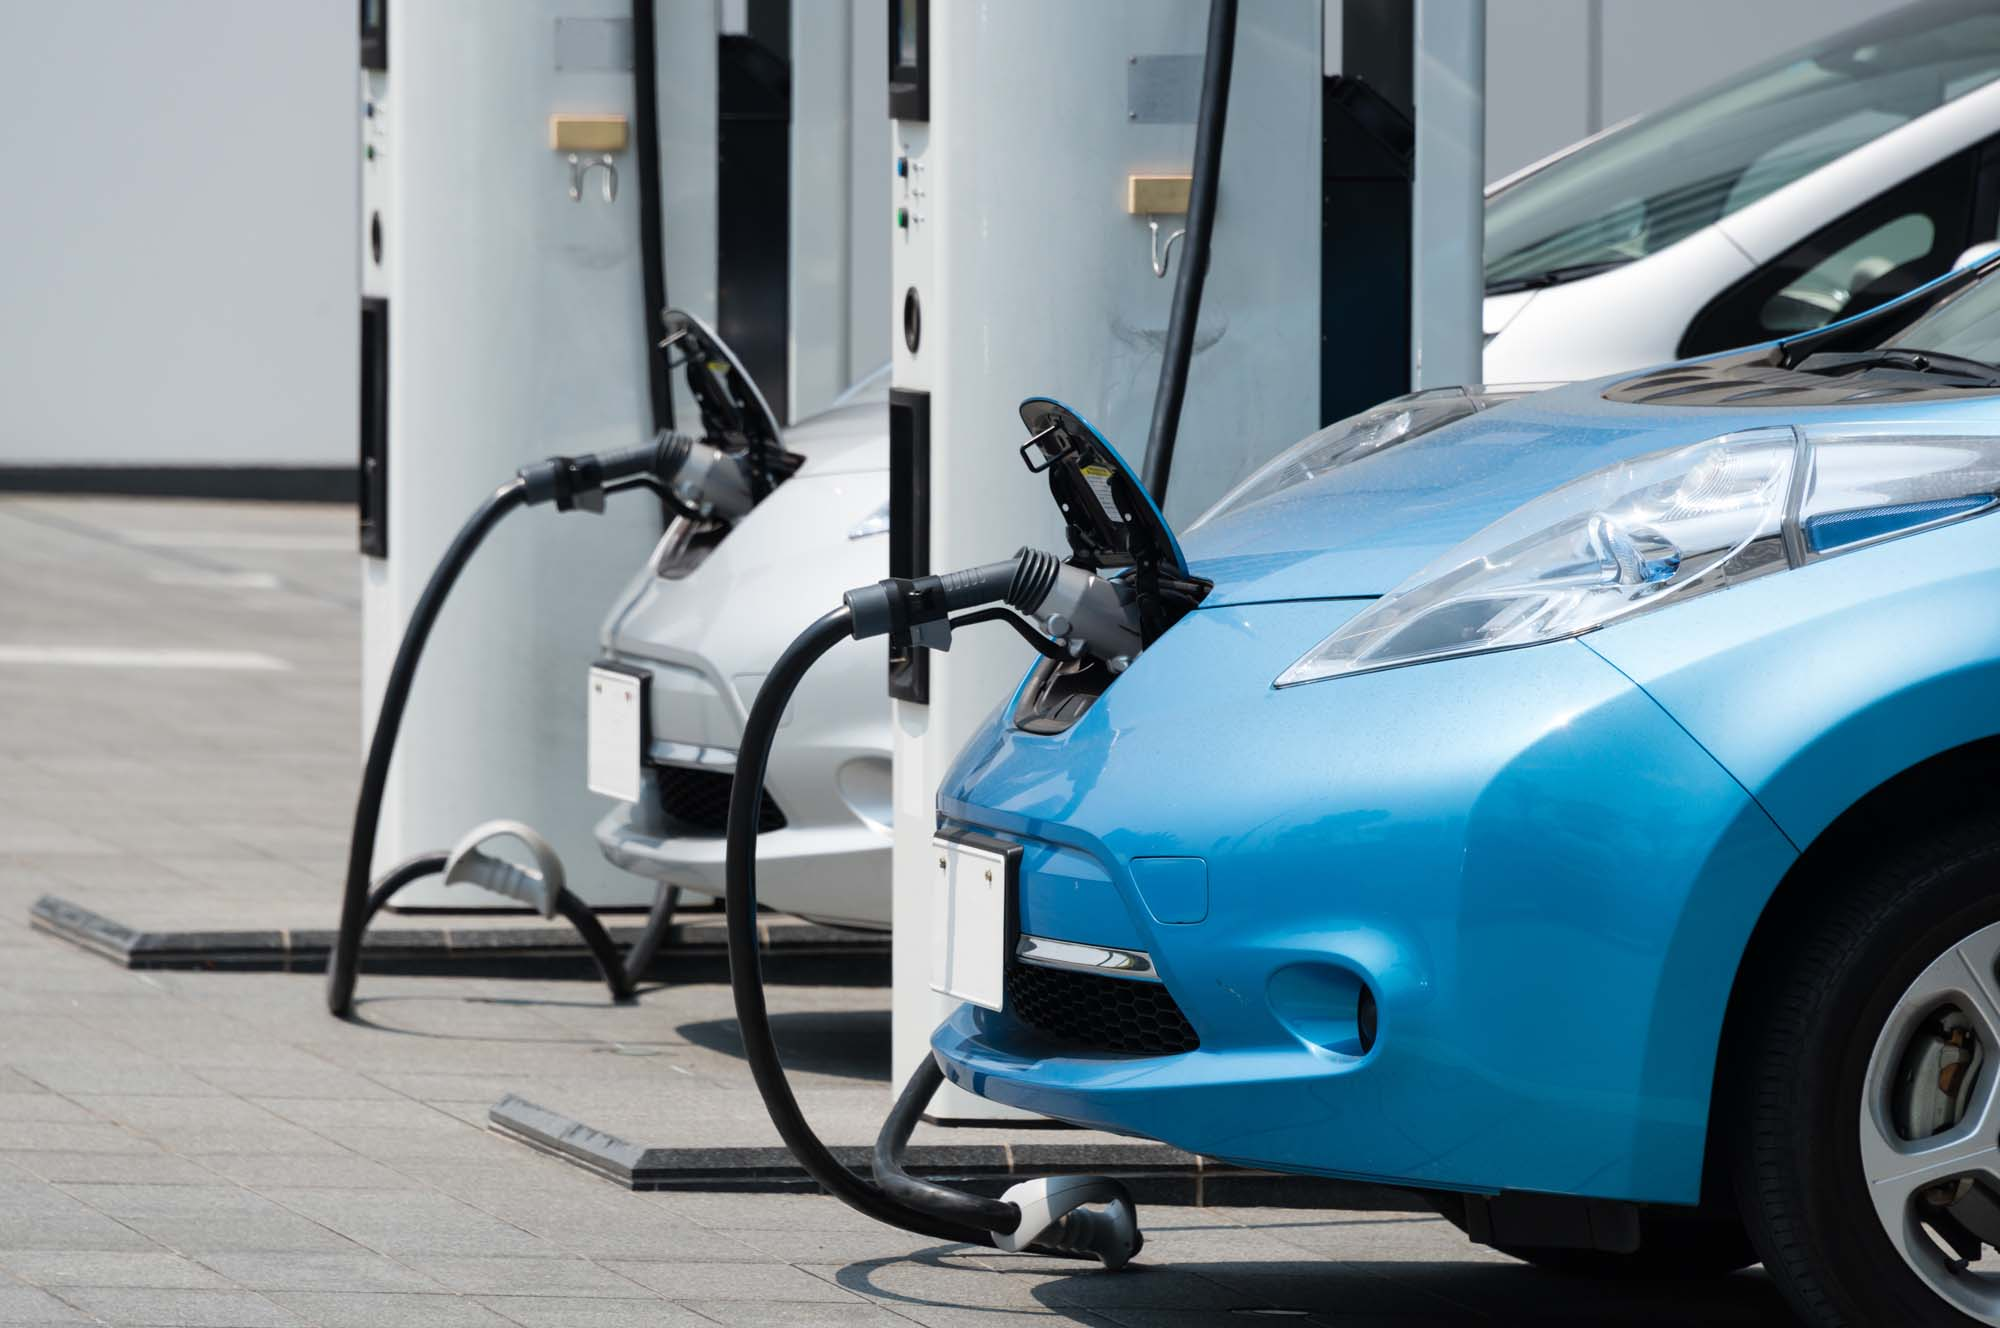 Multifamily Garages To See Increased Need For Electric Car Charging Stations